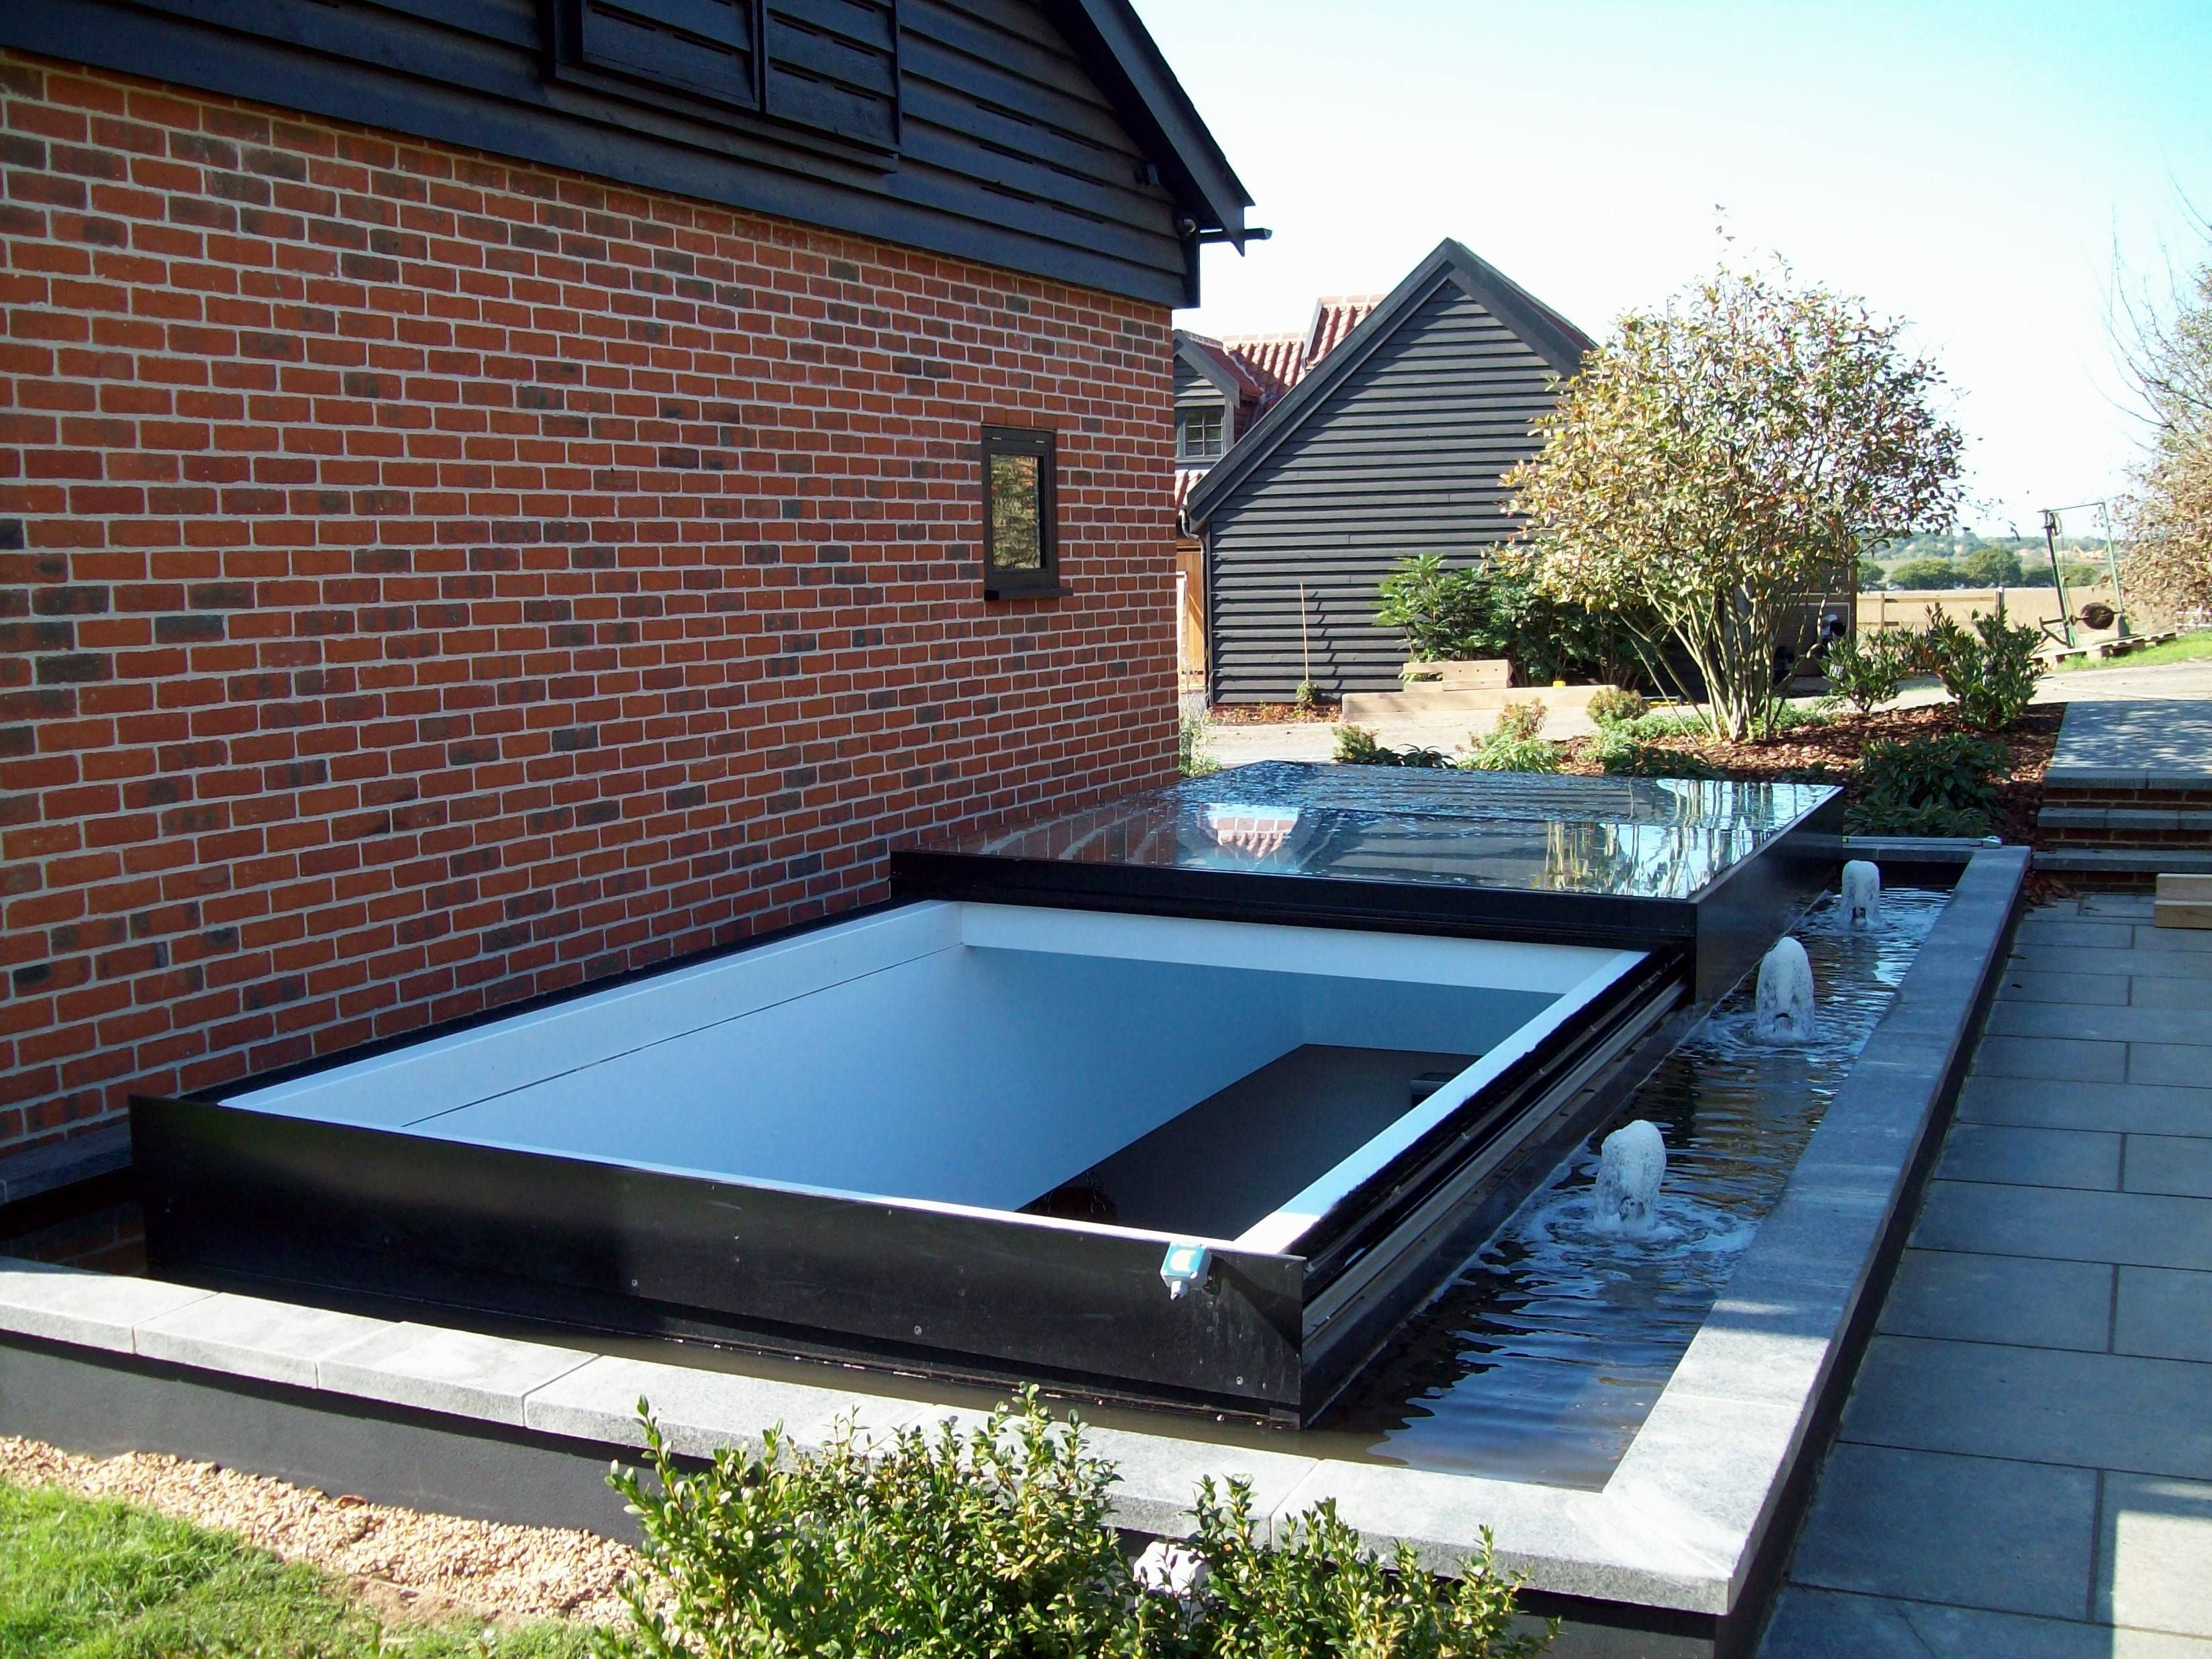 Home roof access glazed roof hatch glazed roof hatch - Doors Image Number 8 Of Sliding Roof